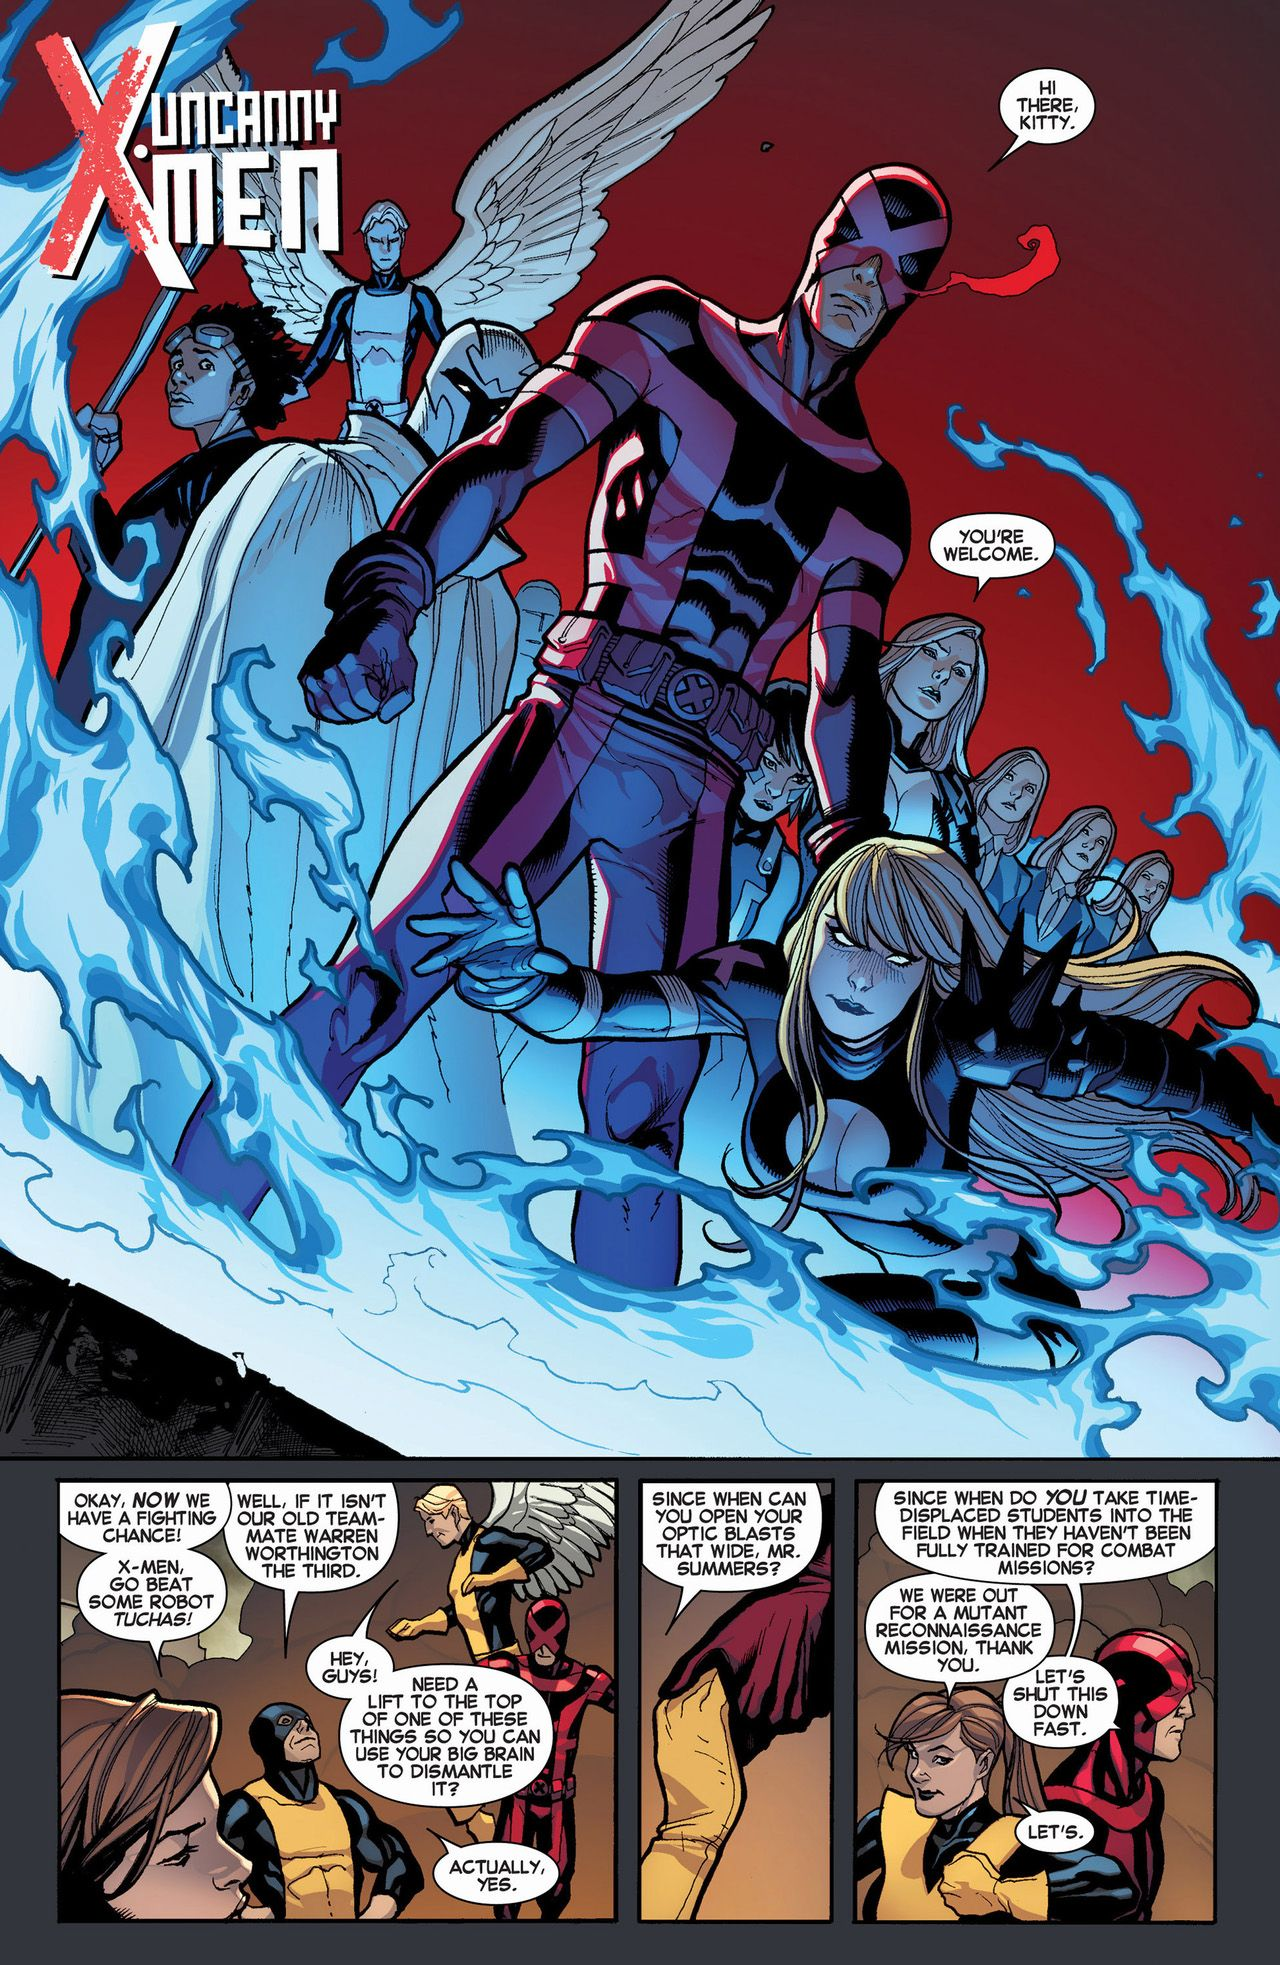 Cyclops Helps Out The Original 5 X Men Http Comicnewbies Com 2014 11 30 Uncanny X Men Helps Out The Original 5 X Men Xmen Comics Cyclops X Men Comics